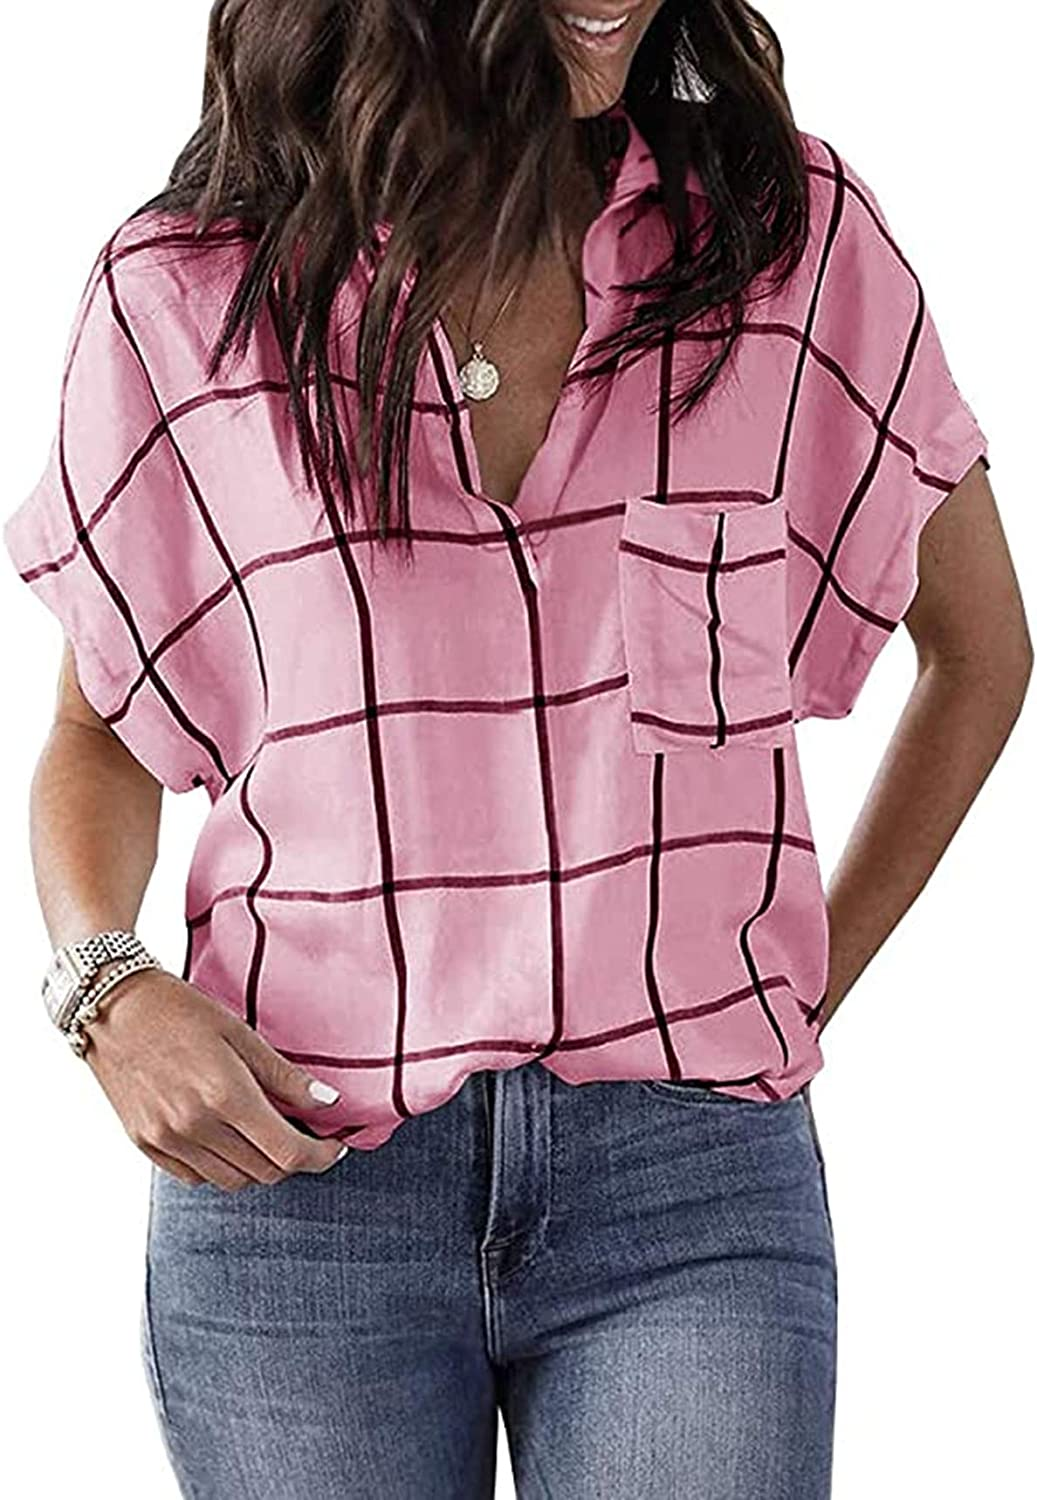 Chuanqi Womens Summer Shirt V Neck Collared Casual Plaid Cuffed Sleeve Blouse Tops with Pockets